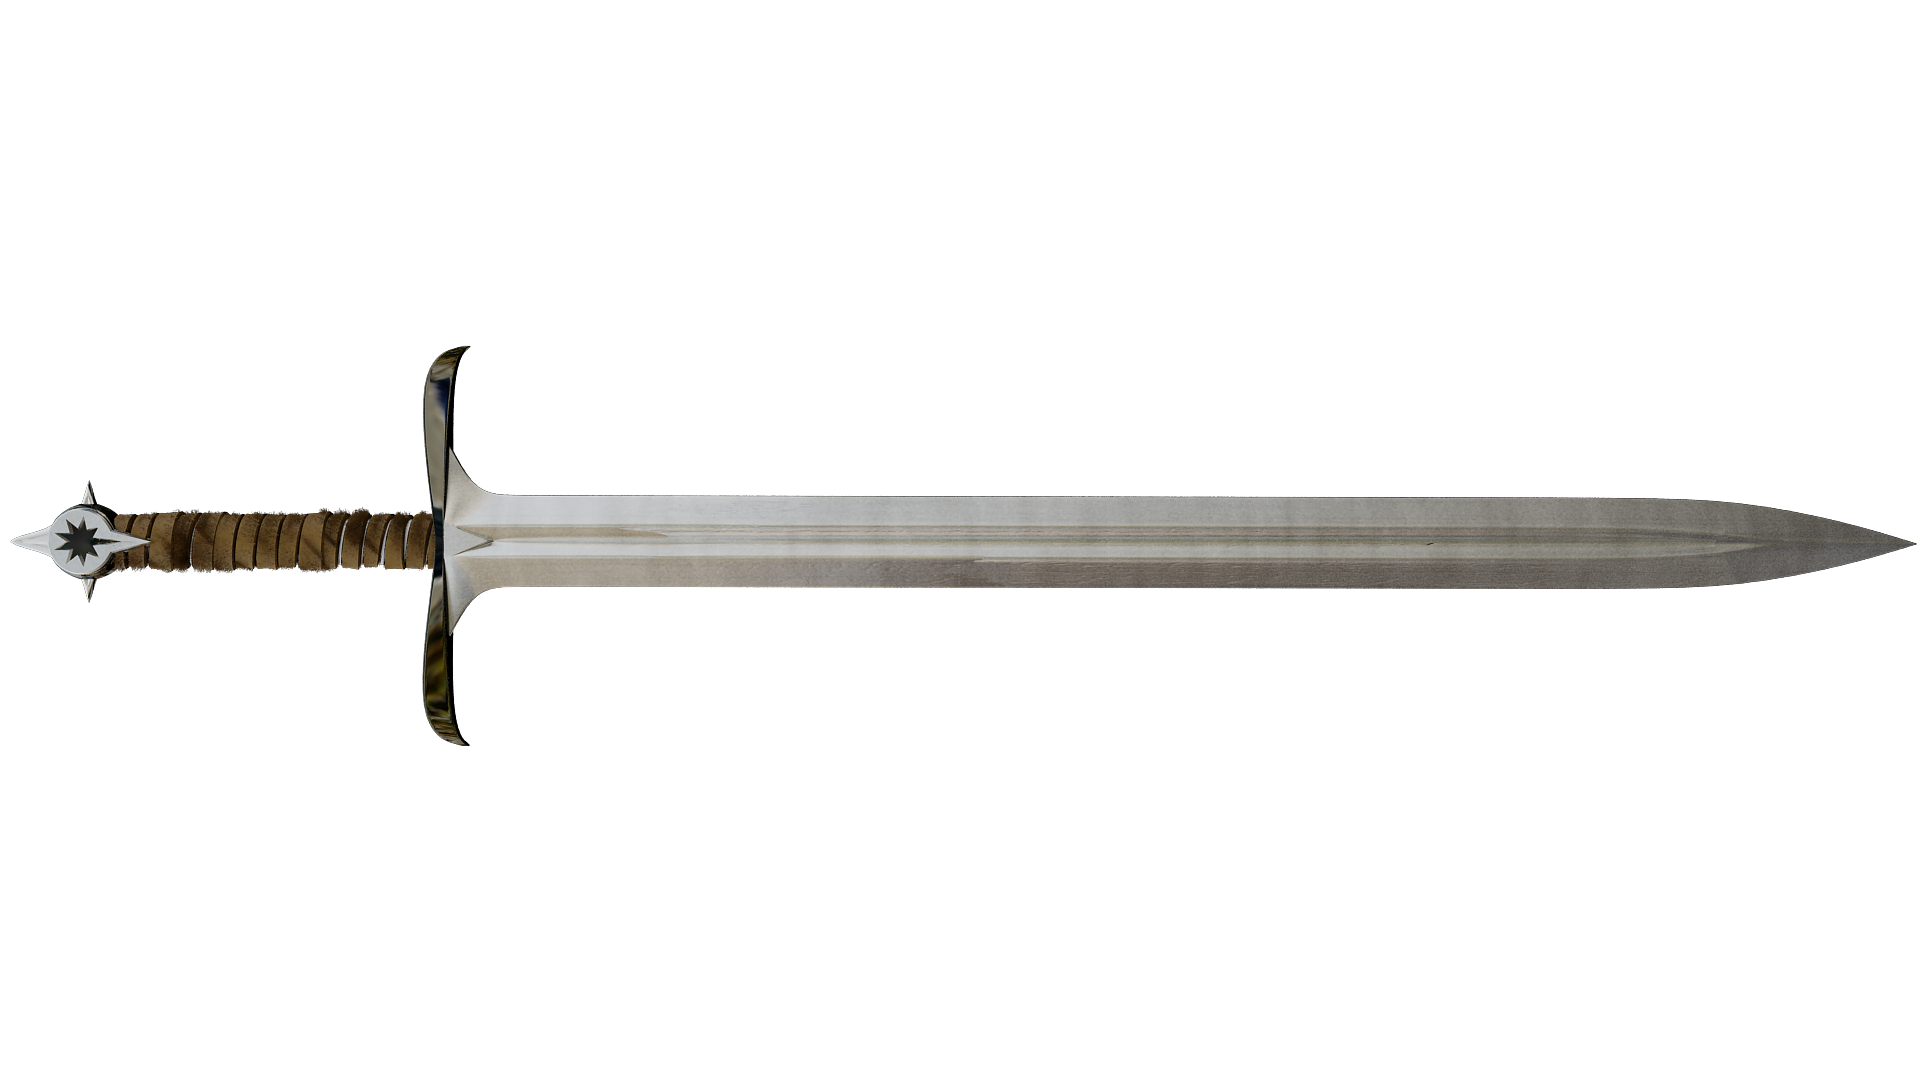 Informations/recrutements Sword-hd-png-sword-png-image-1920